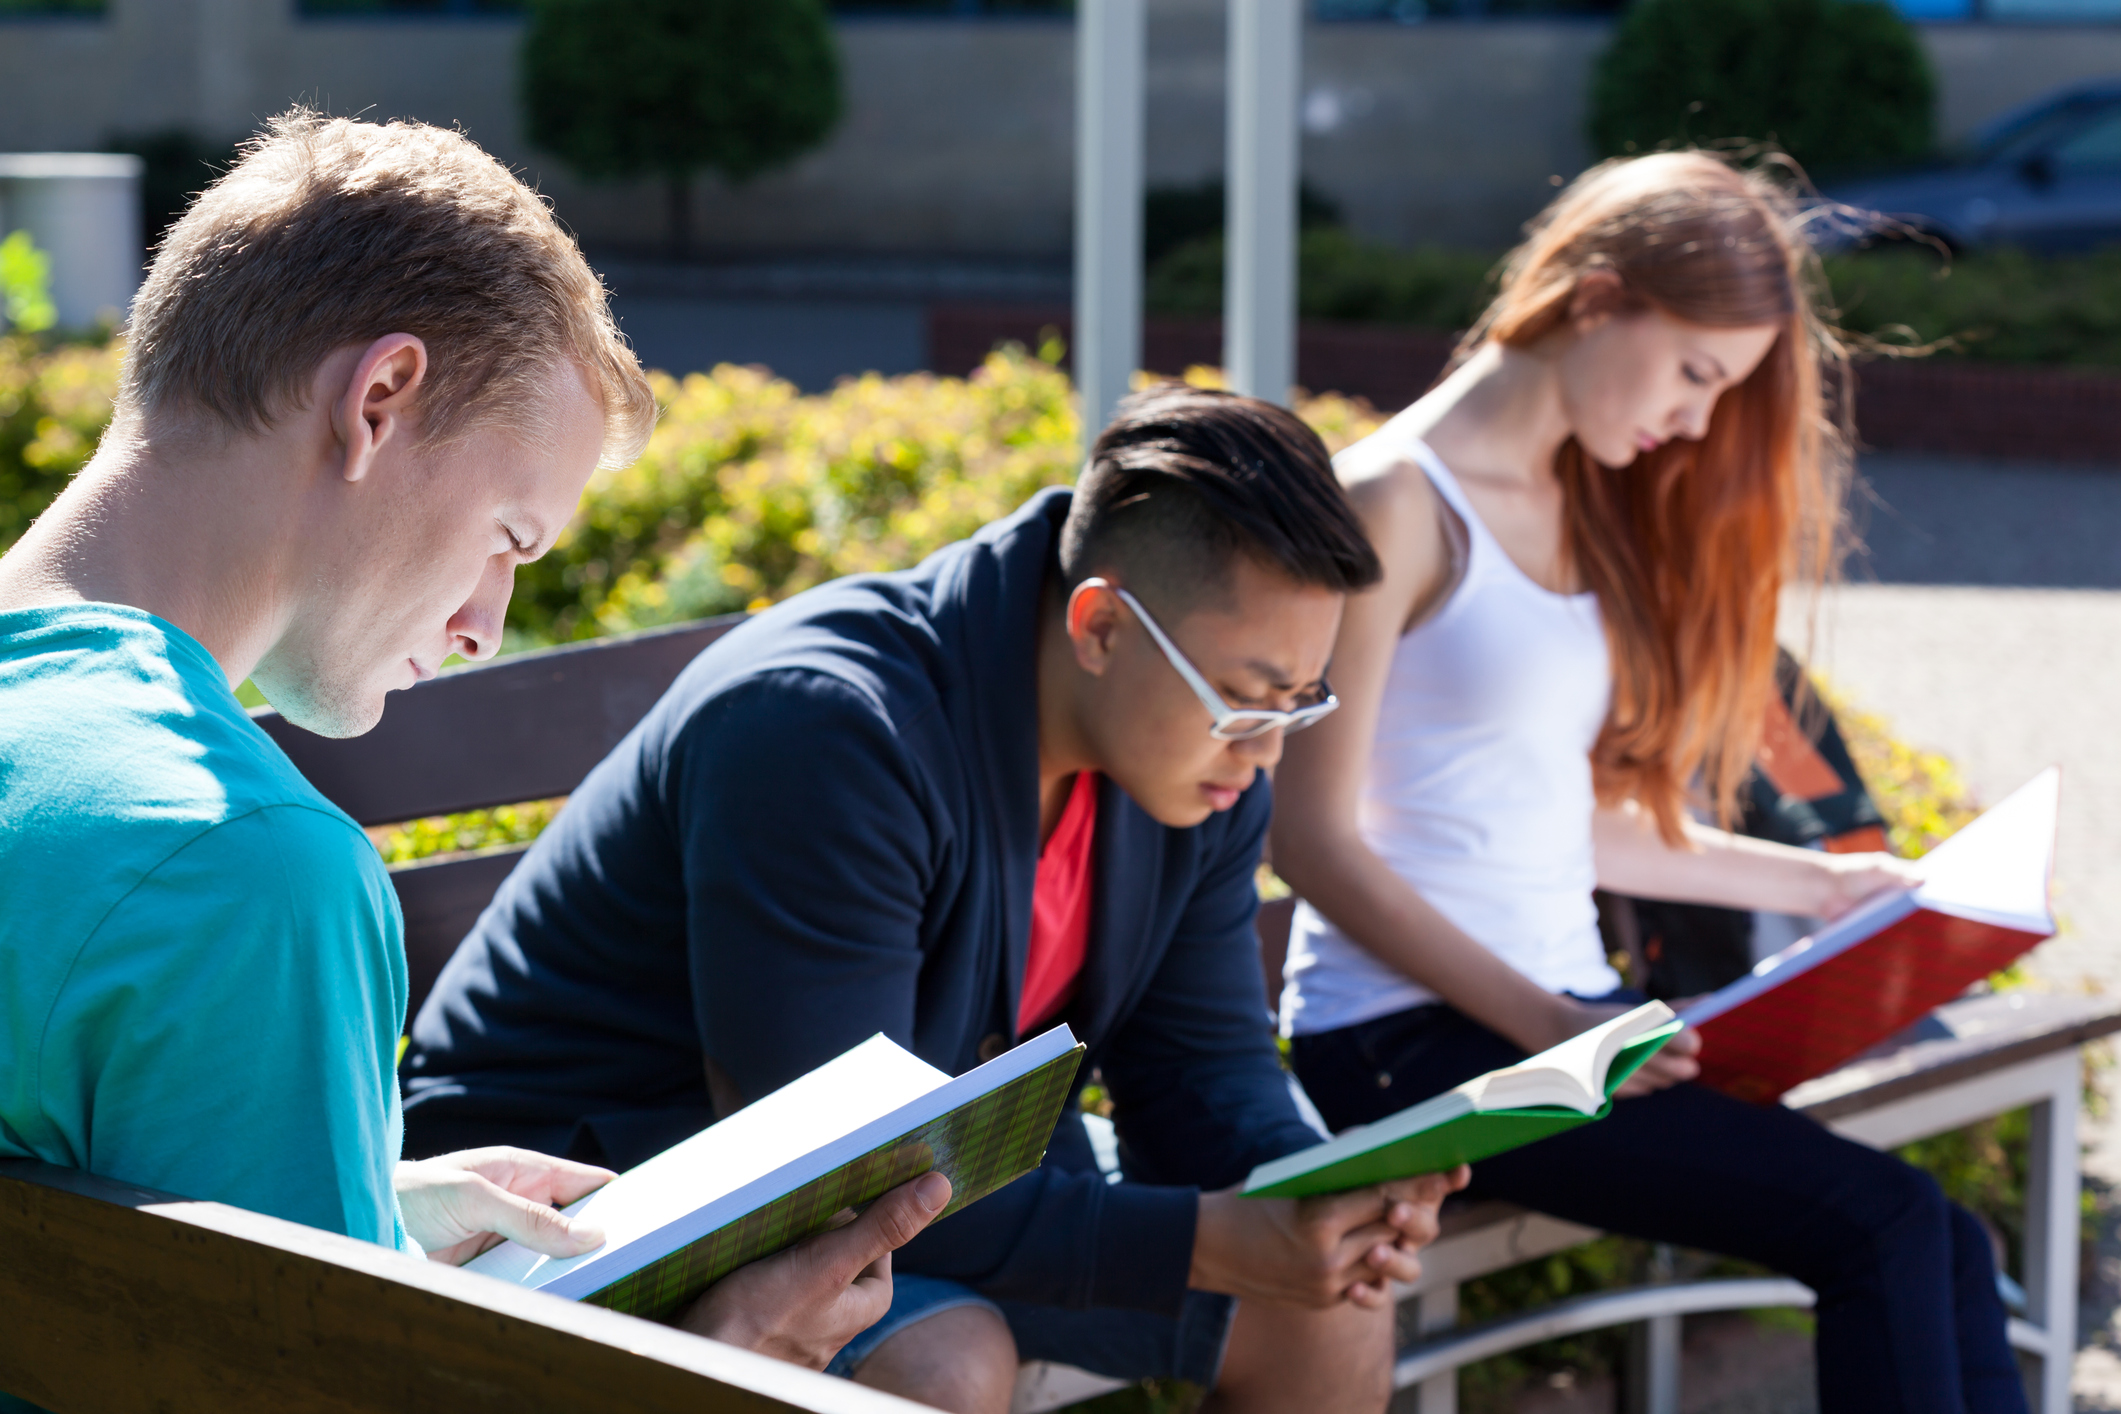 Group of mixed race students studying on a bench outside